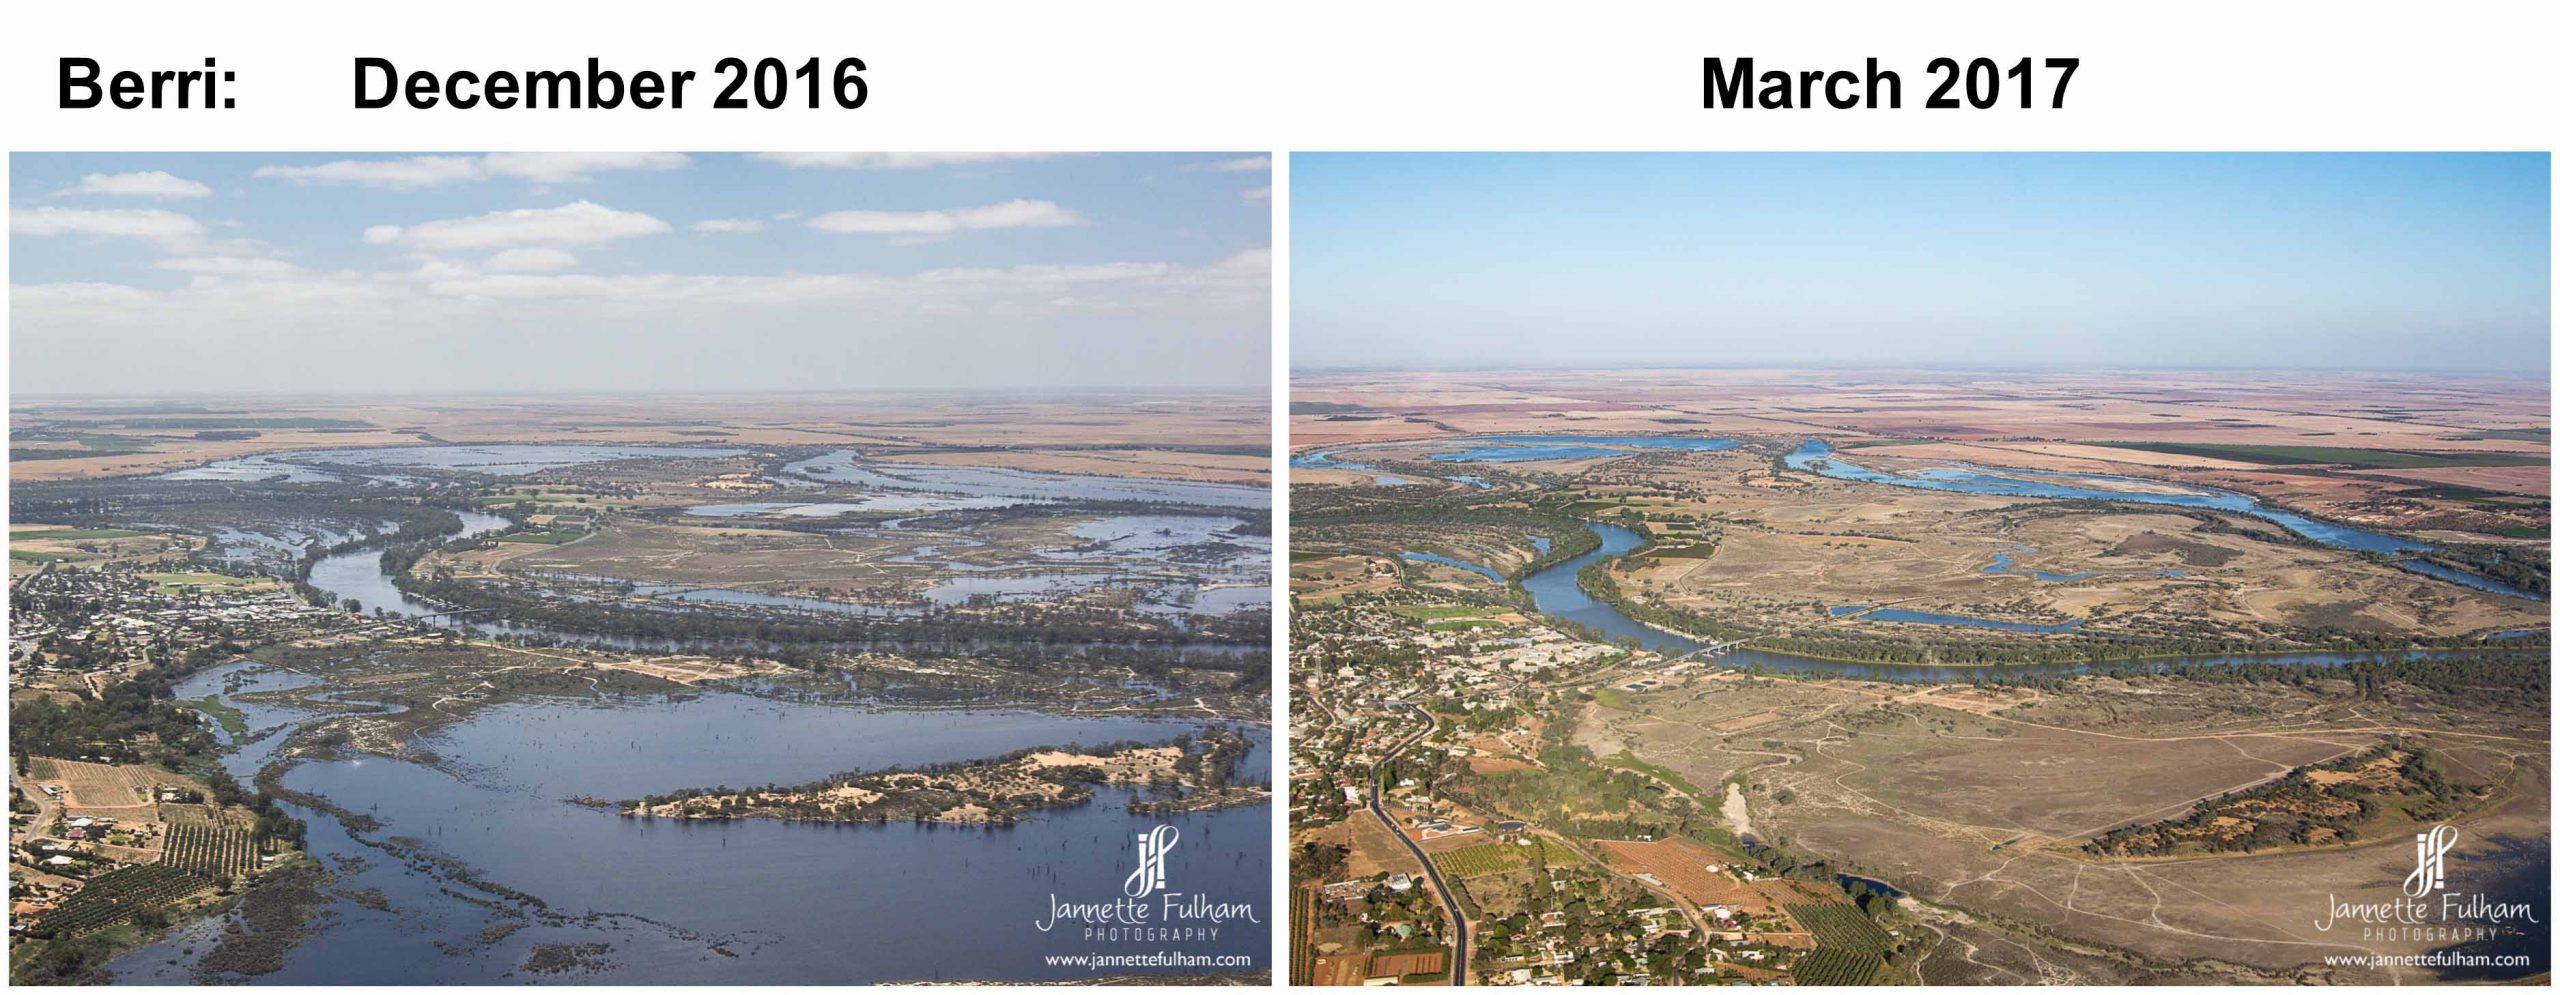 aerial, comparison, river, murray, berri